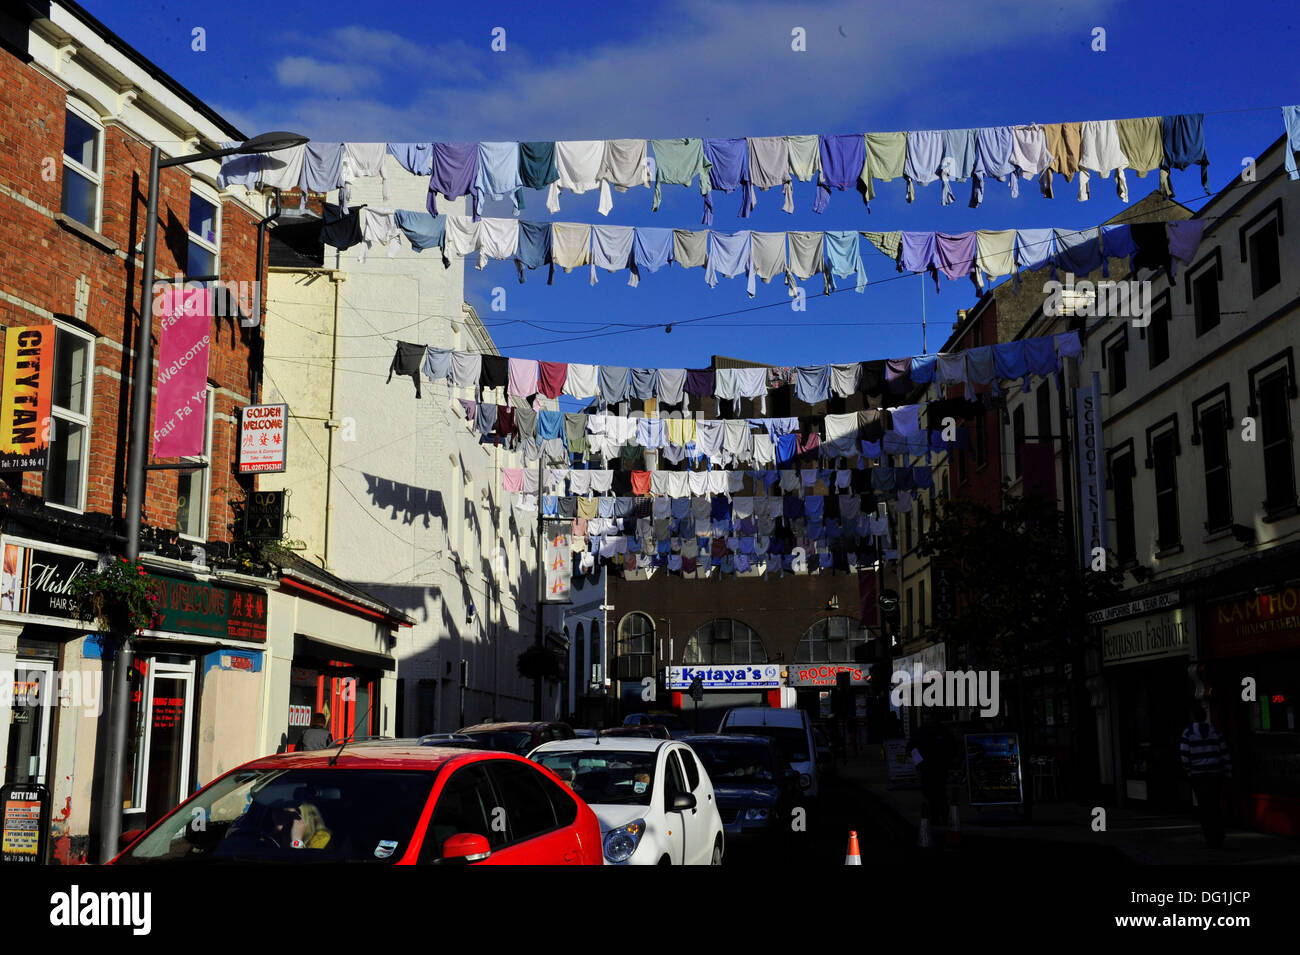 Derry, Londonderry, Northern Ireland, UK. 11th Oct, 2013. Belfast artist Rita Duffy celebrates Londonderry's shirt manufacturing history with a display of over 300 shirts hanging across William Street. The eye-catching art installation is an aspect of the artist's Shirt Factory project and part of the UK City of Culture celebrations. .  Credit: George Sweeney / Alamy Live News - Stock Image